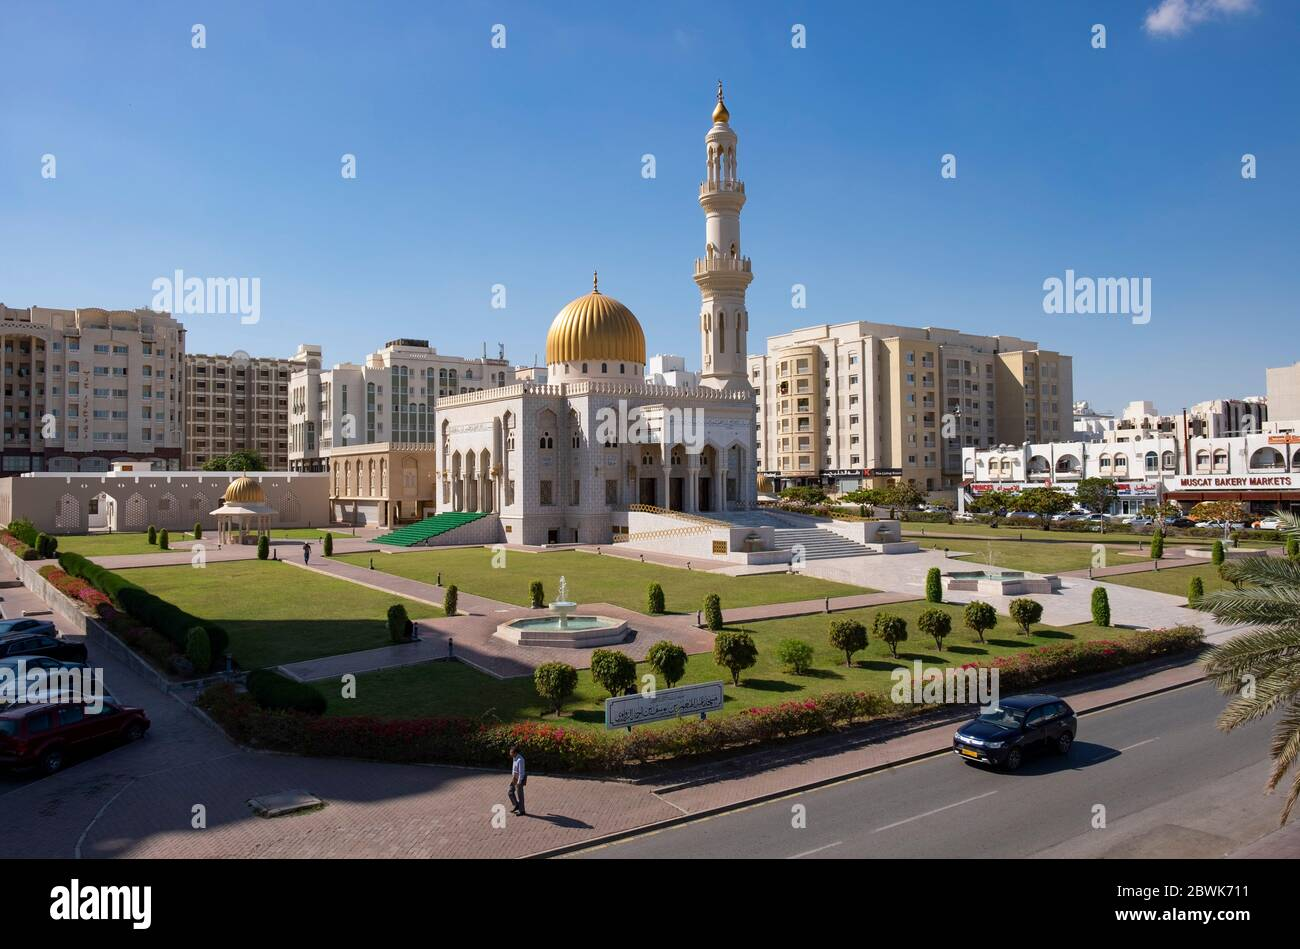 Elevated view of the Masjid Al Zawawi Mosque,Muscat, Sultanate of Oman. Stock Photo